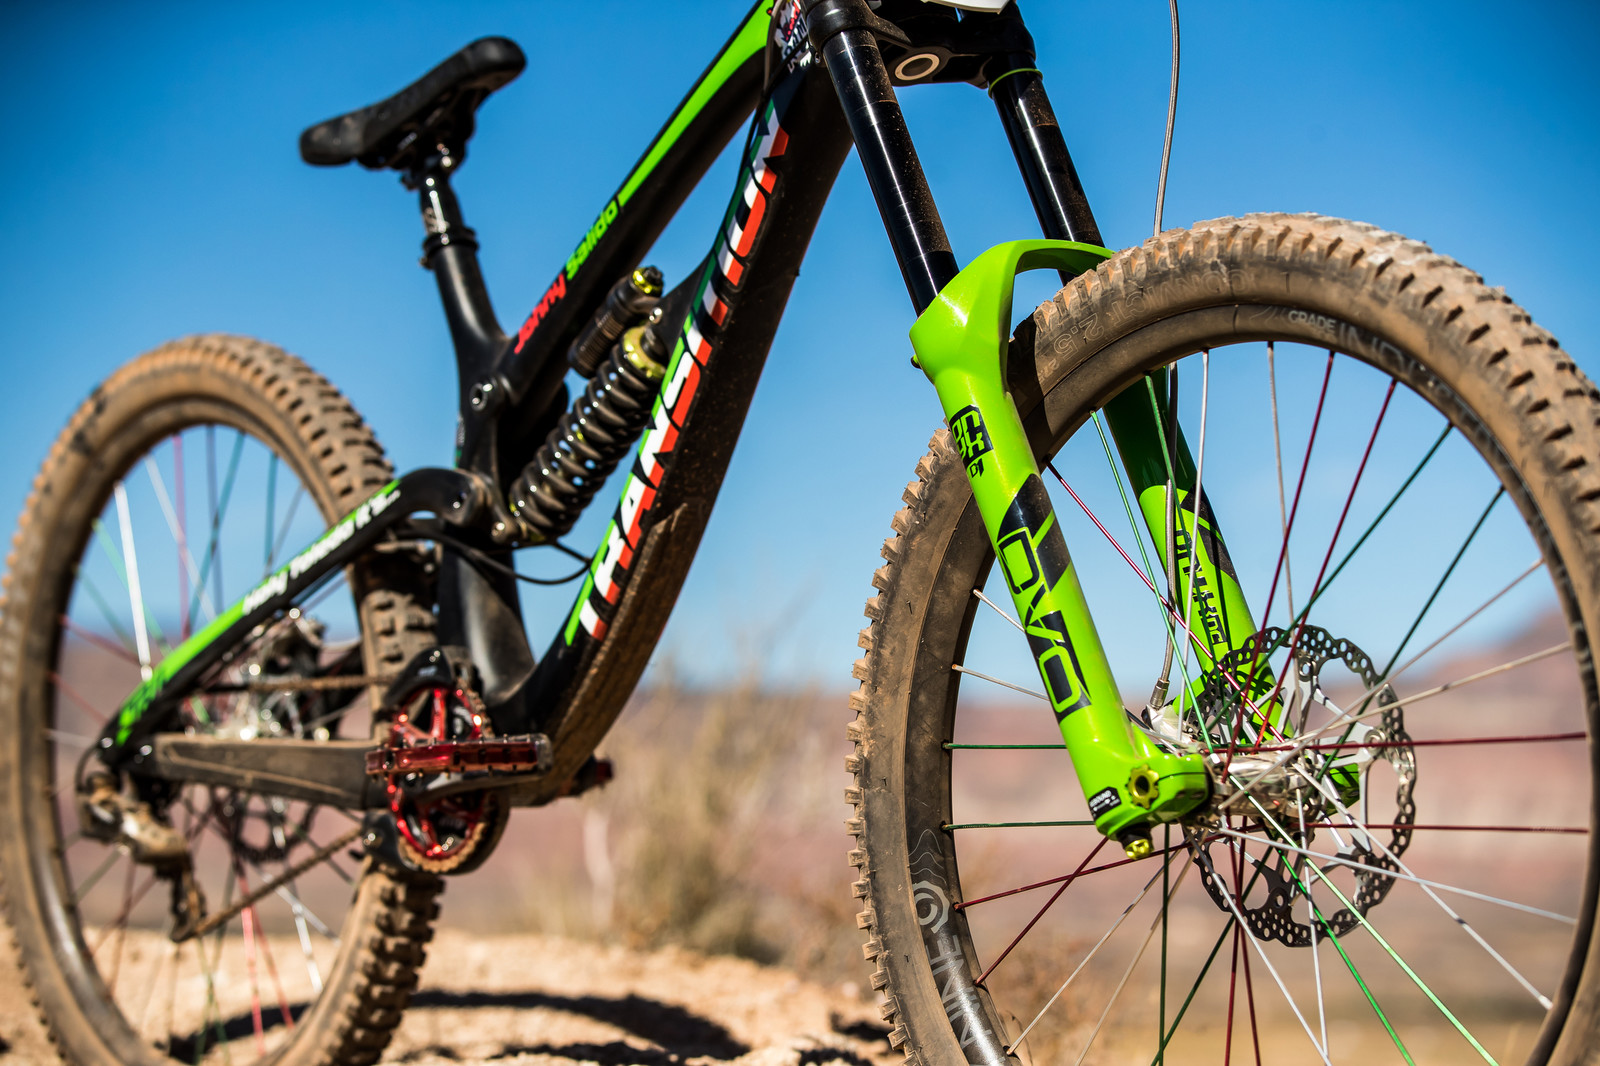 DVO Suspension on Juan Diego Salido's Transition TR11 at Rampage 2019 - RAMPAGE BIKE - Juan Diego Salido's Transition TR11 - Mountain Biking Pictures - Vital MTB